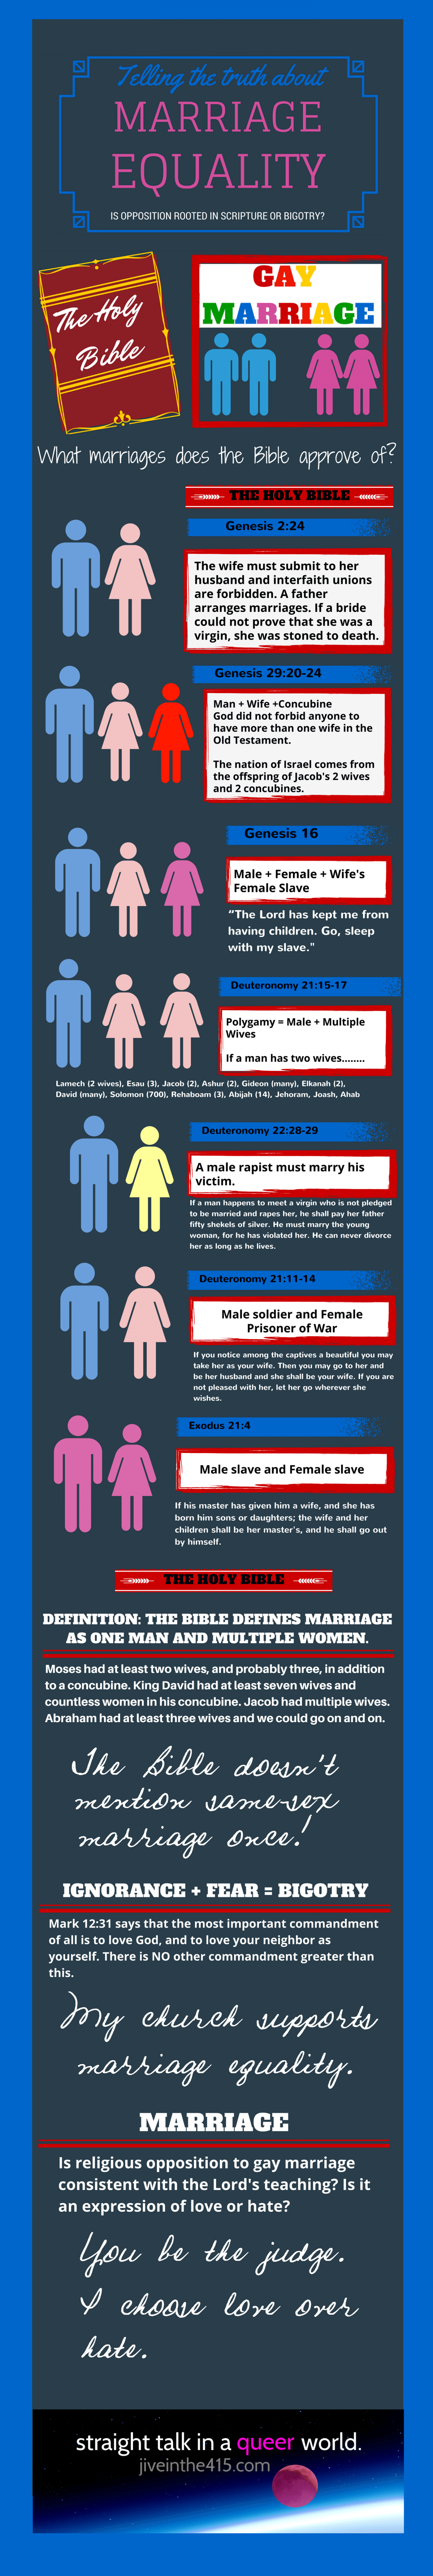 telling the truth about marriage equality and the bible | visual.ly